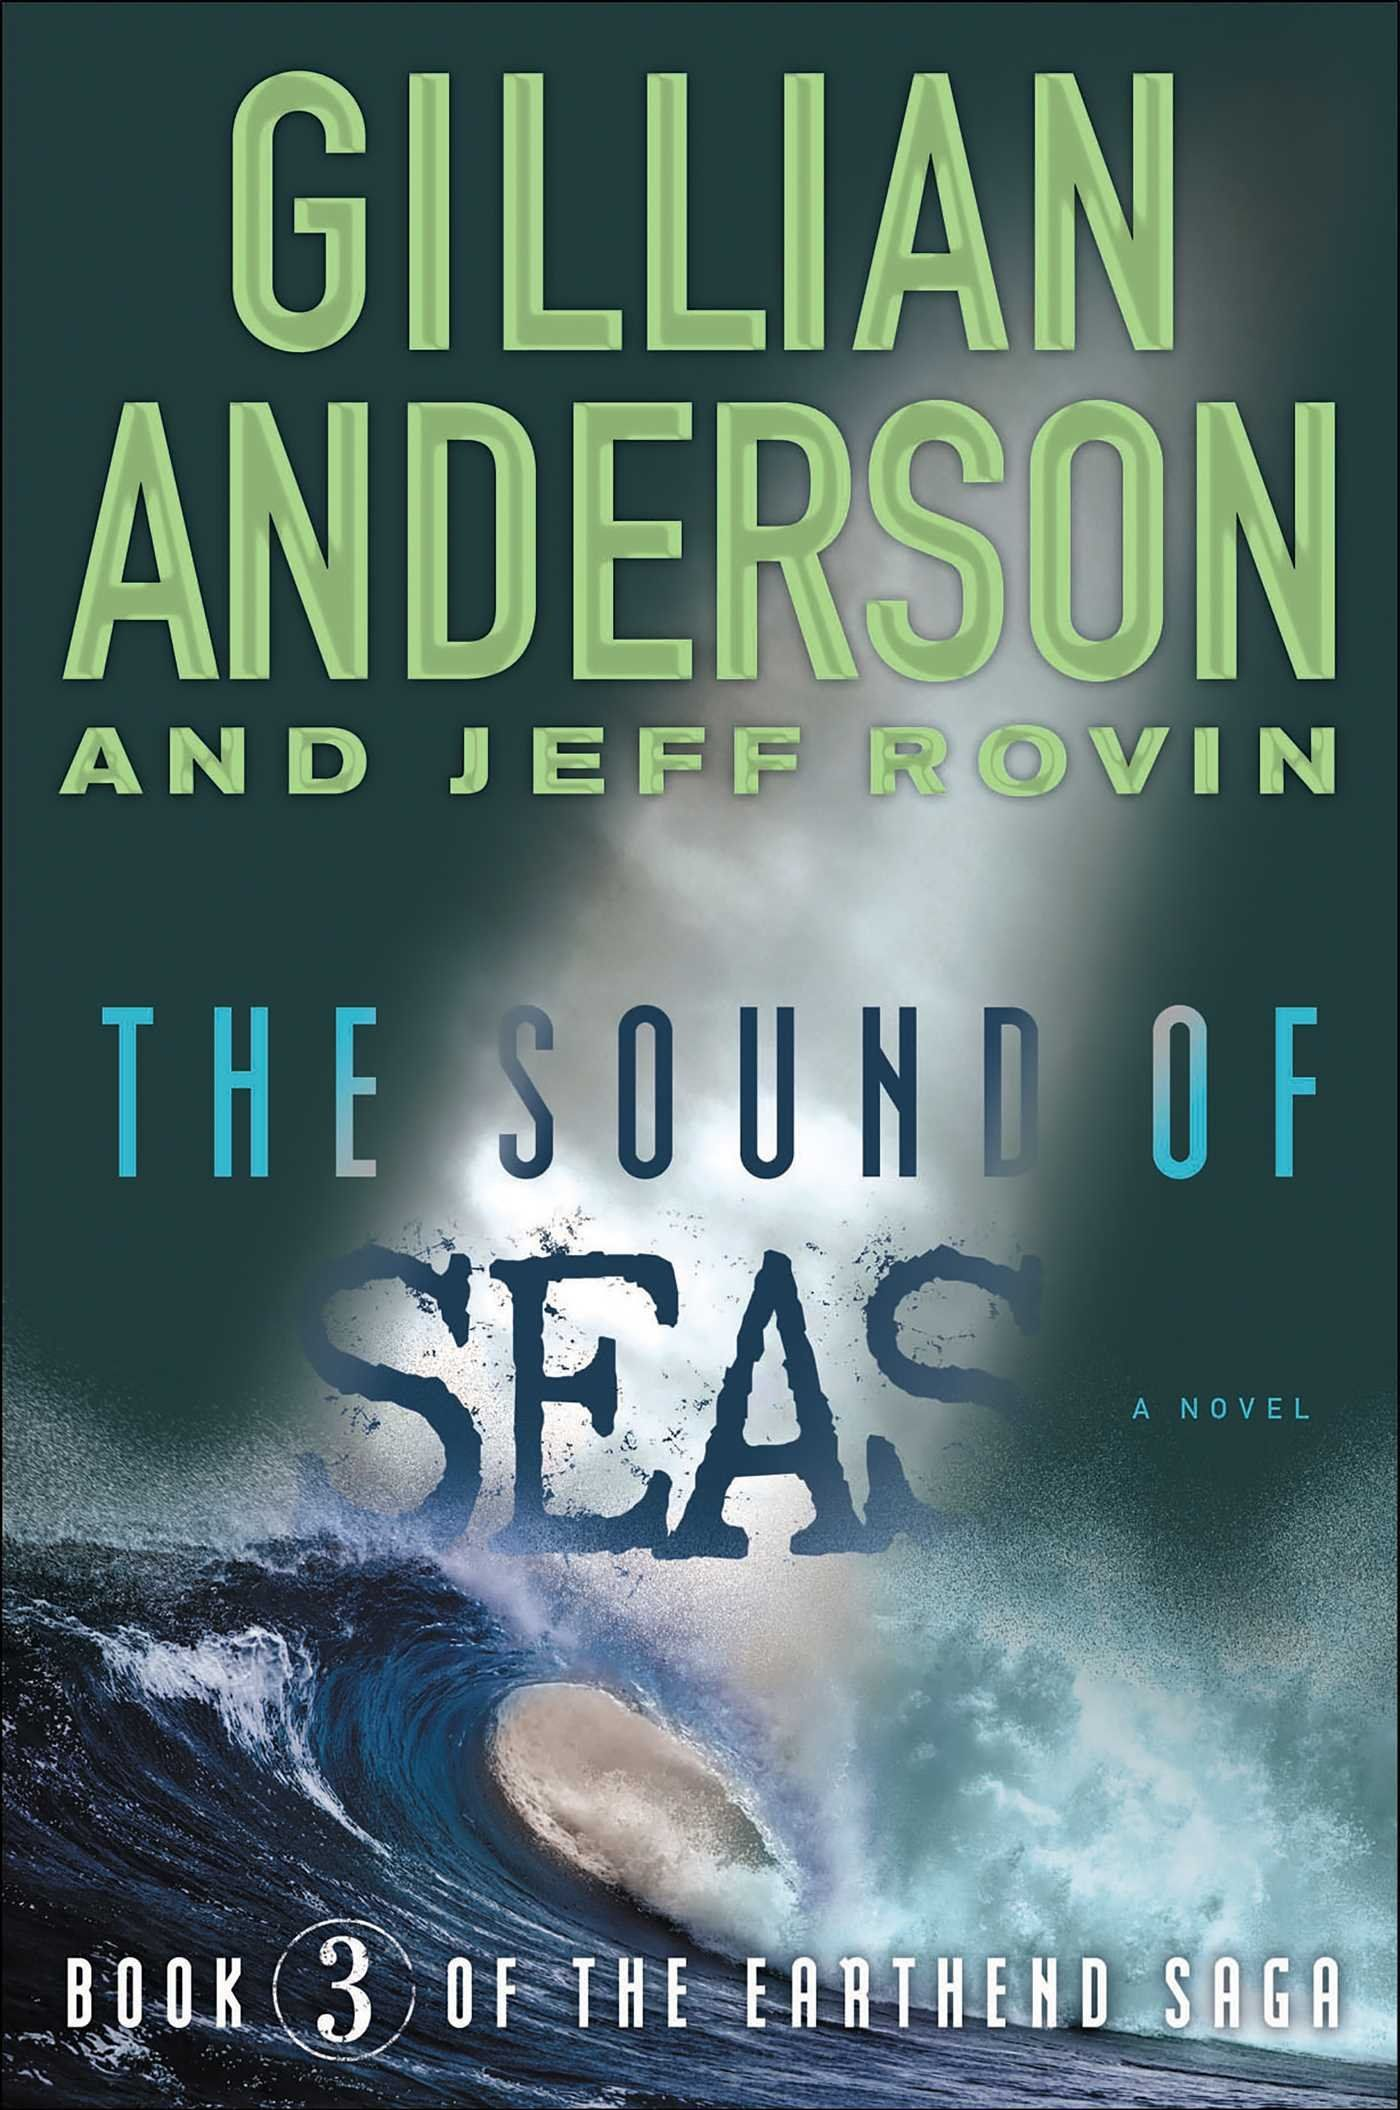 The Sound of Seas: Book 3 of The EarthEnd Saga by Gillian Anderson, Jeff Rovin   Hardcover: 320 pages Publisher: Simon & Schuster/ Simon451 (September 13, 2016)